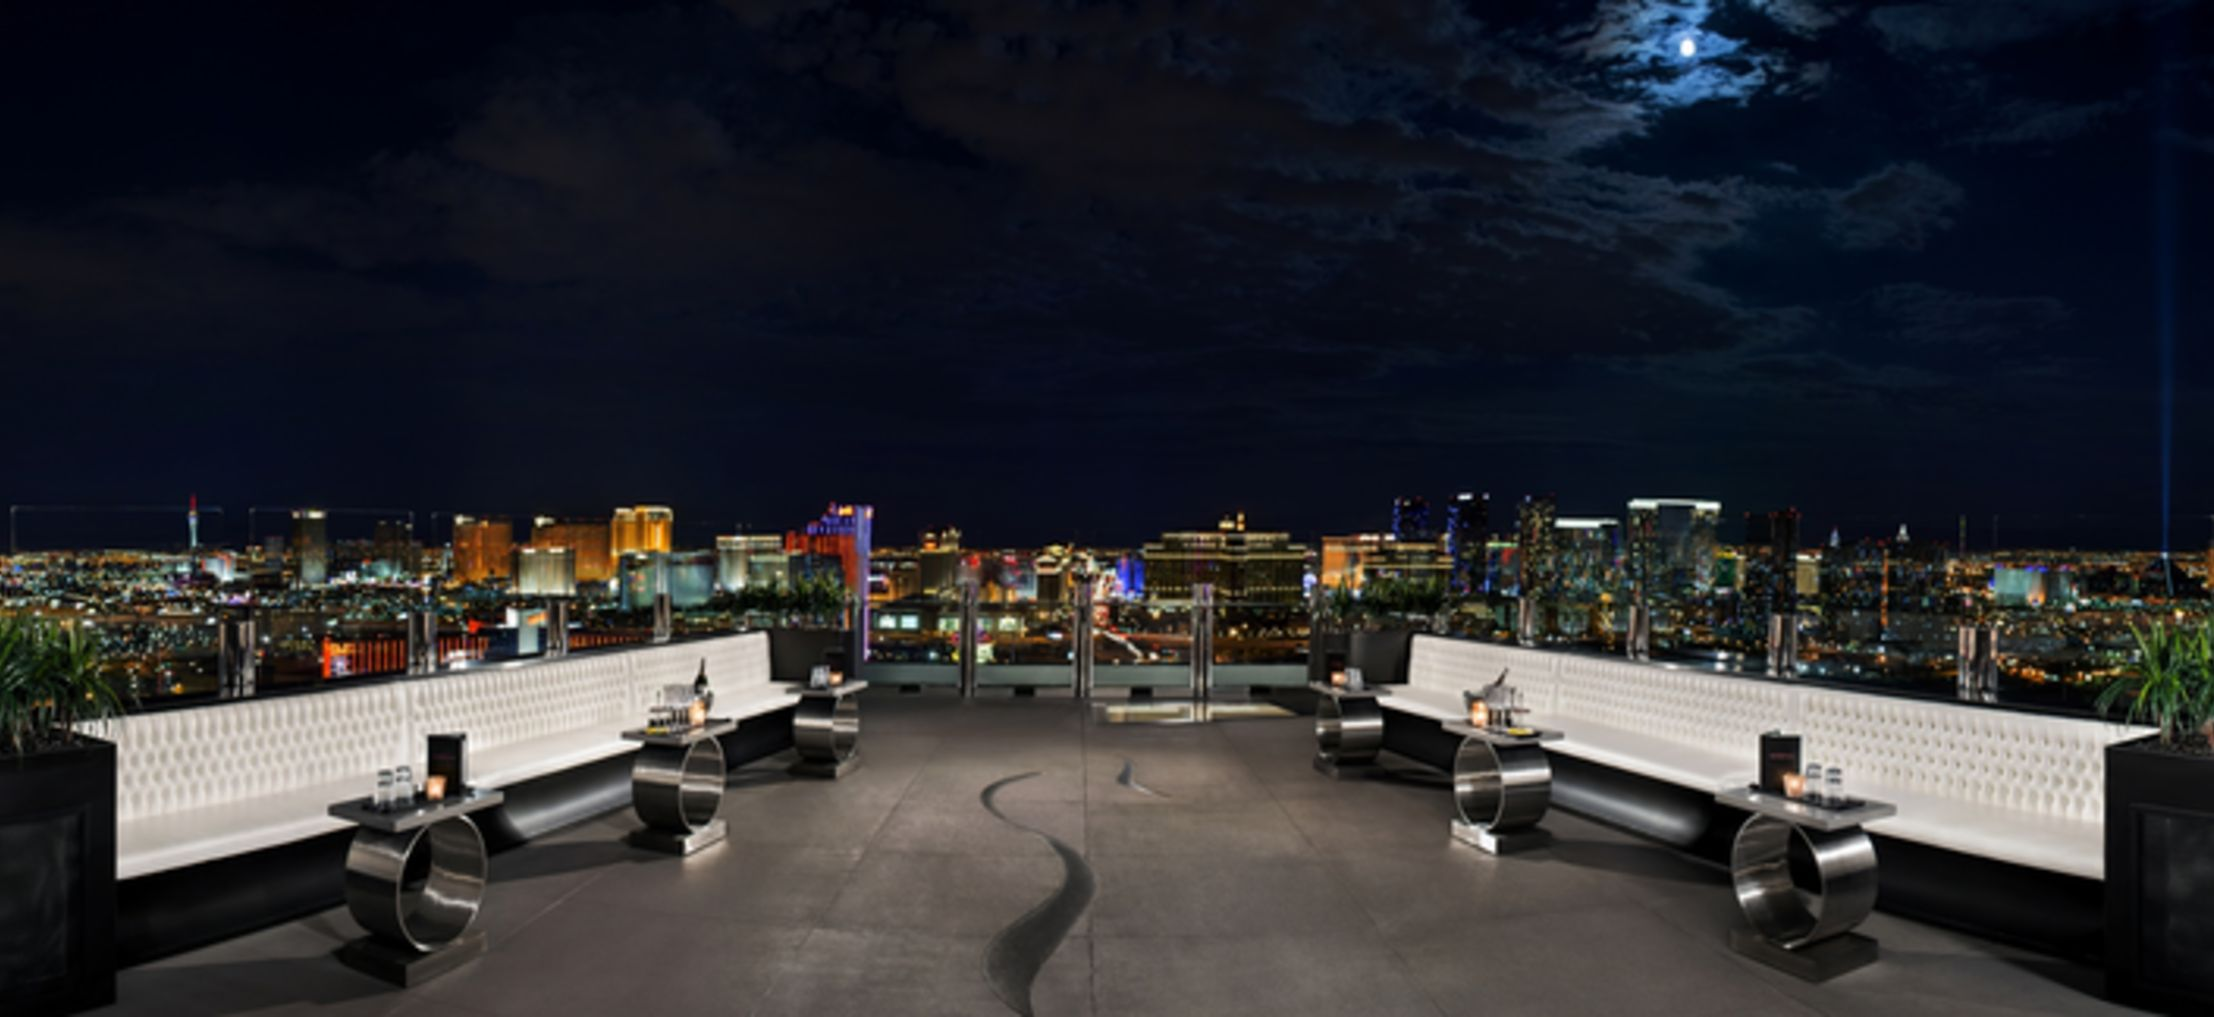 Las Vegas' Best Rooftop Bars and Lounges | WhereTraveler